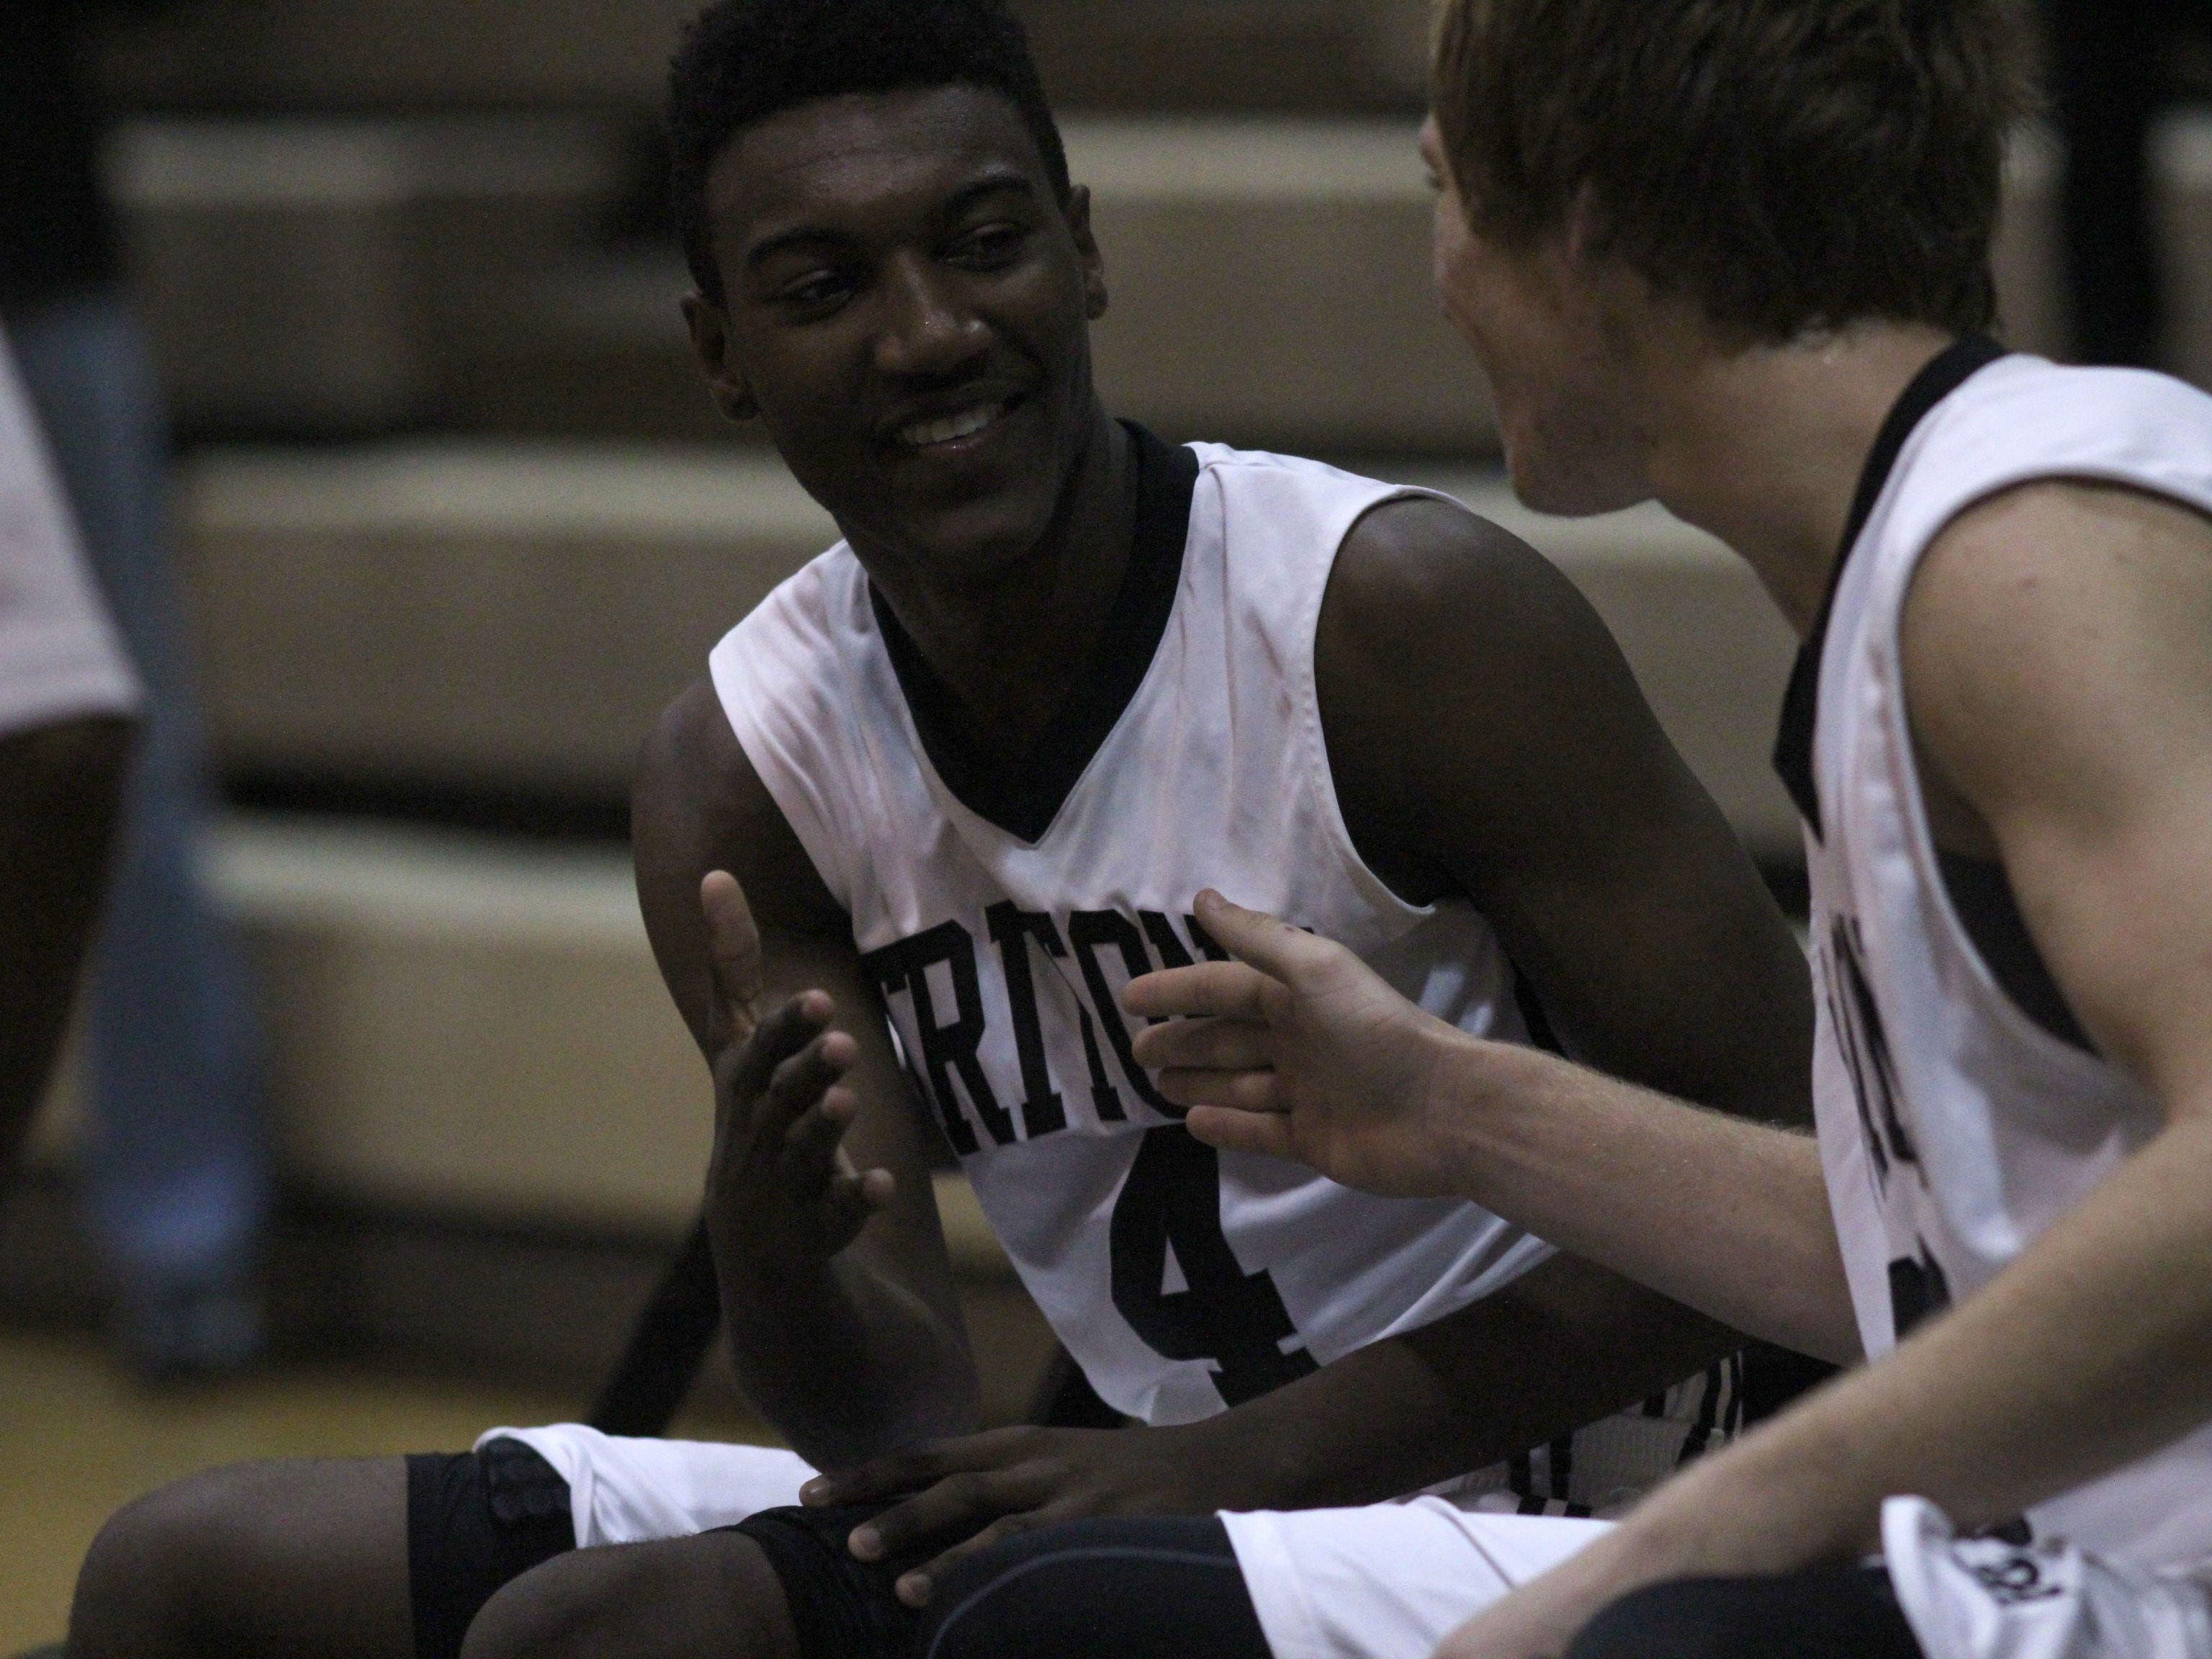 Mariner's Rodney Hunter does a handshake with teammate, Devin Deems, during the pregame introductions at the Tritons' game against Cypress Lake Friday night.